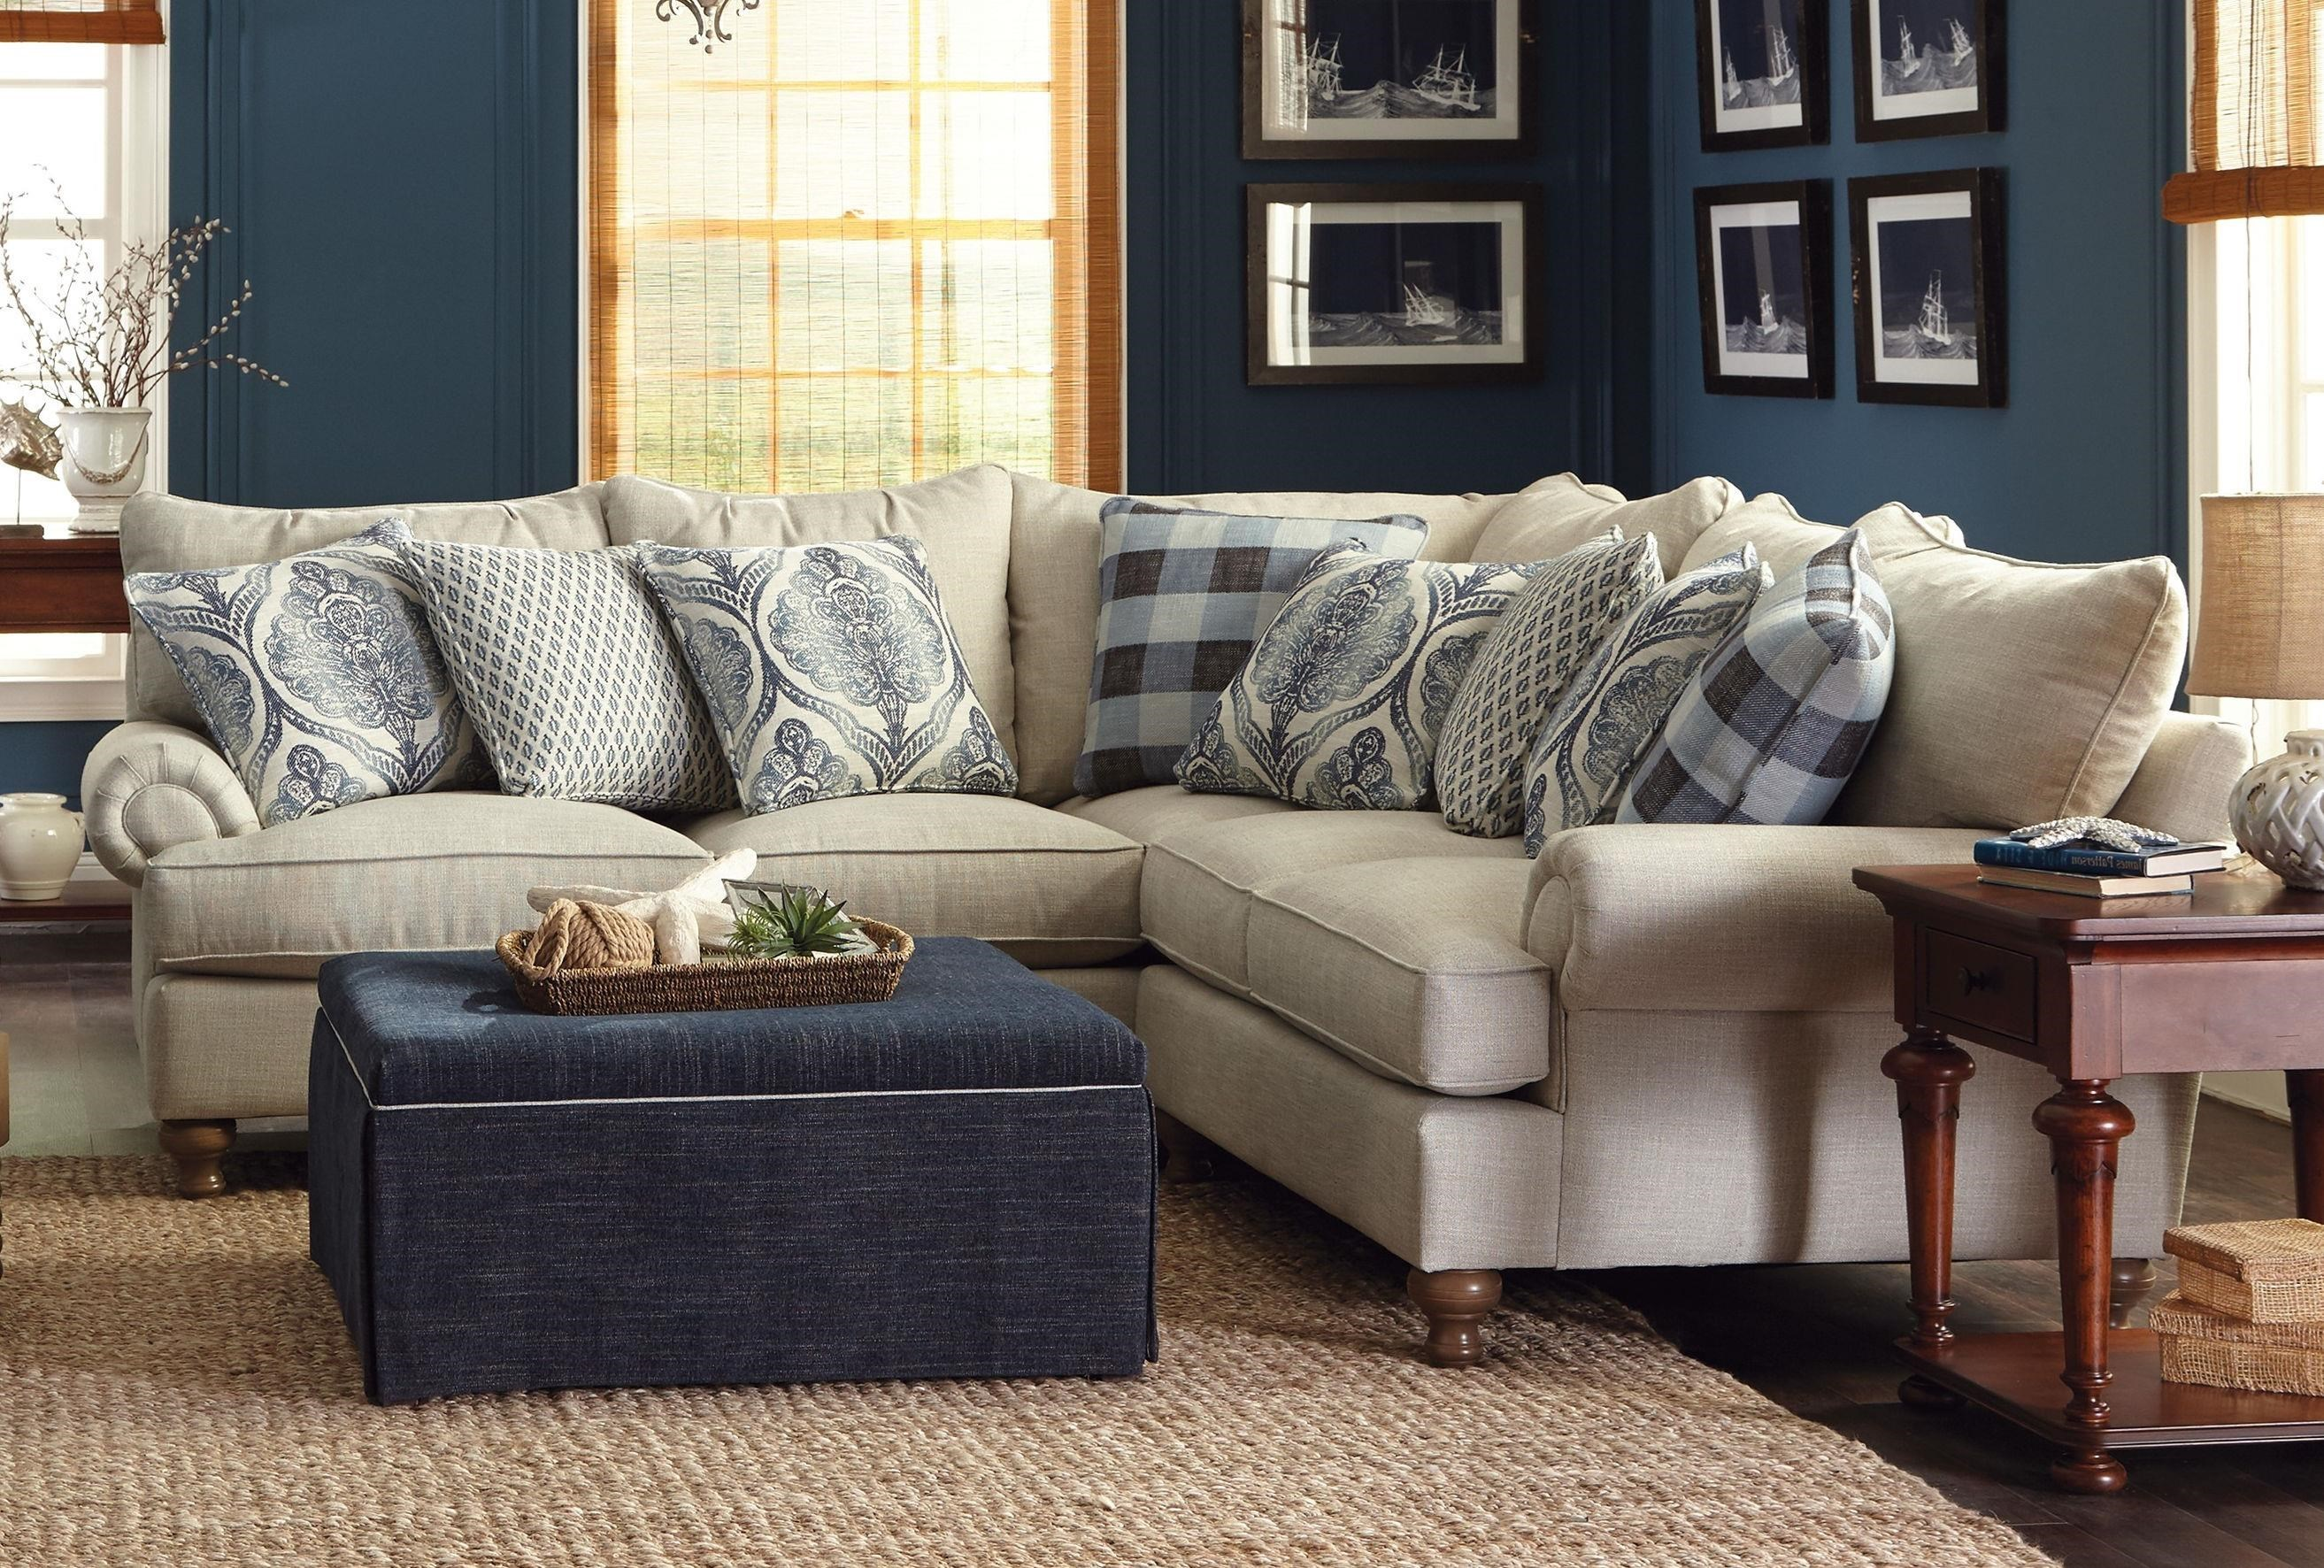 paula deen home living room furniture design ideas pictures by craftmaster p711700 2 piece sectional sofa with rolled arms and turned feet